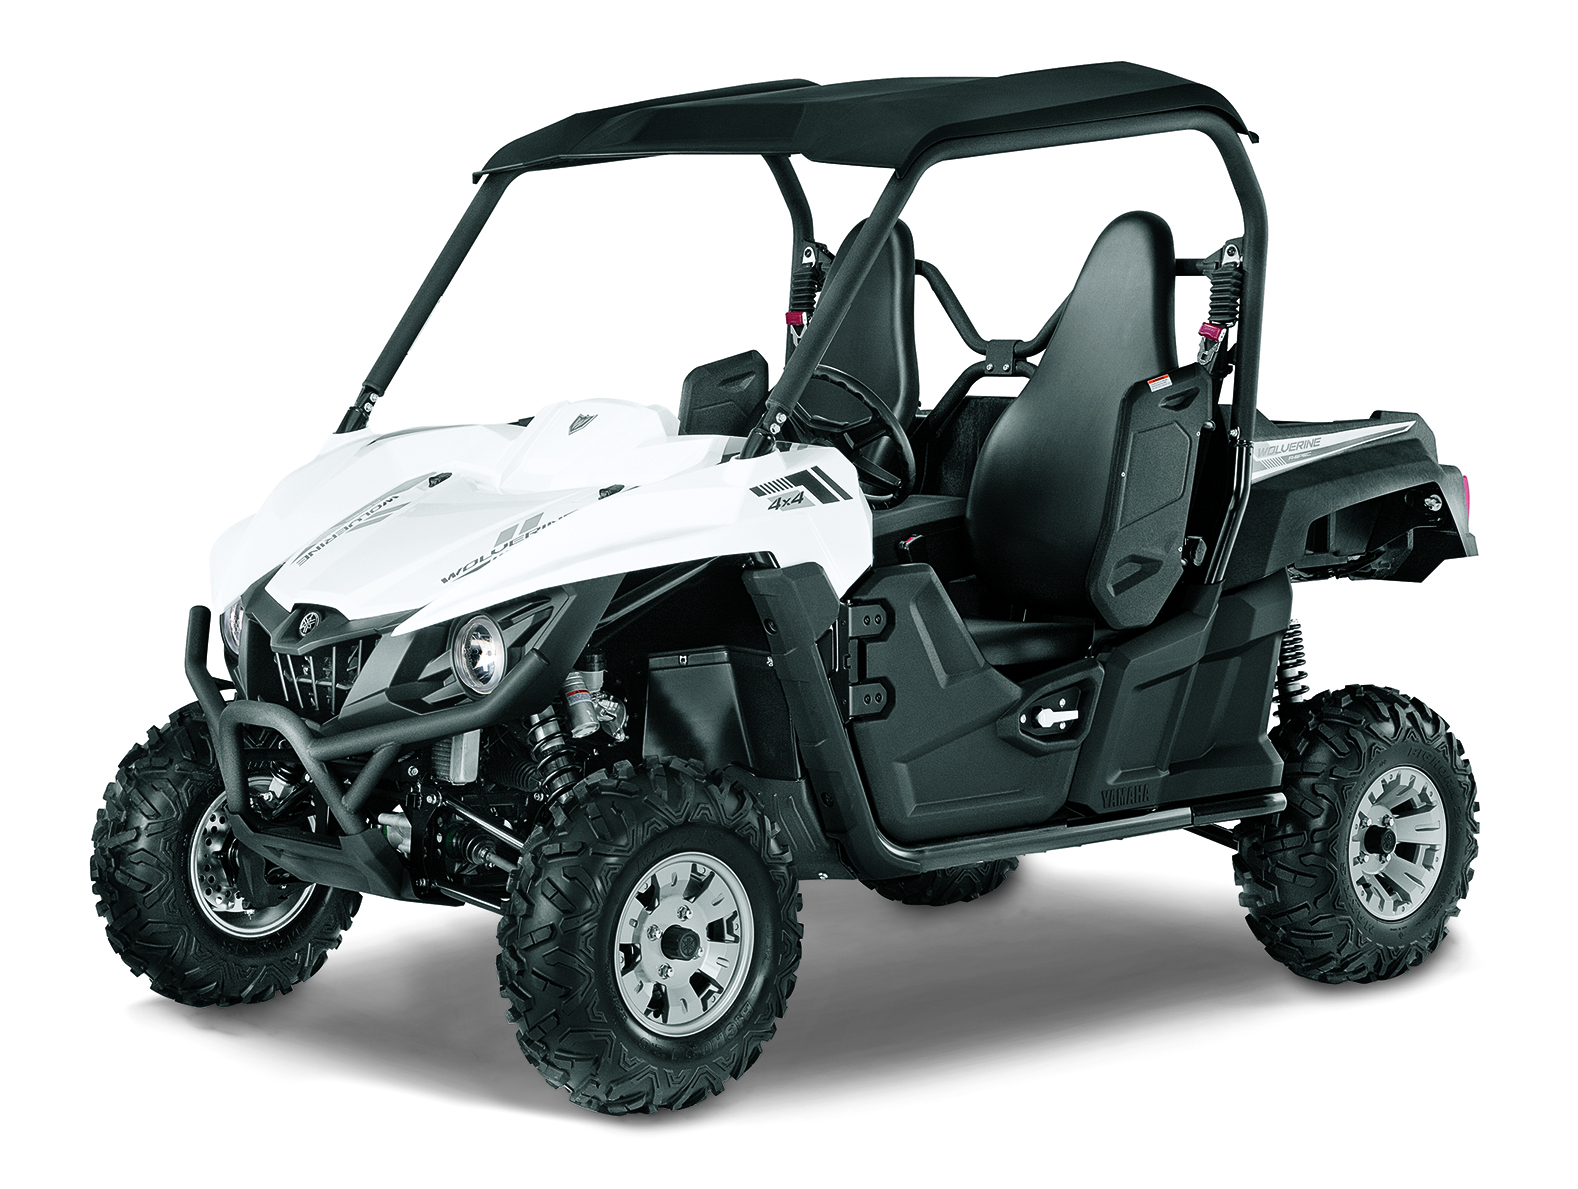 yamaha announces all new 2016 atv and side by side models. Black Bedroom Furniture Sets. Home Design Ideas